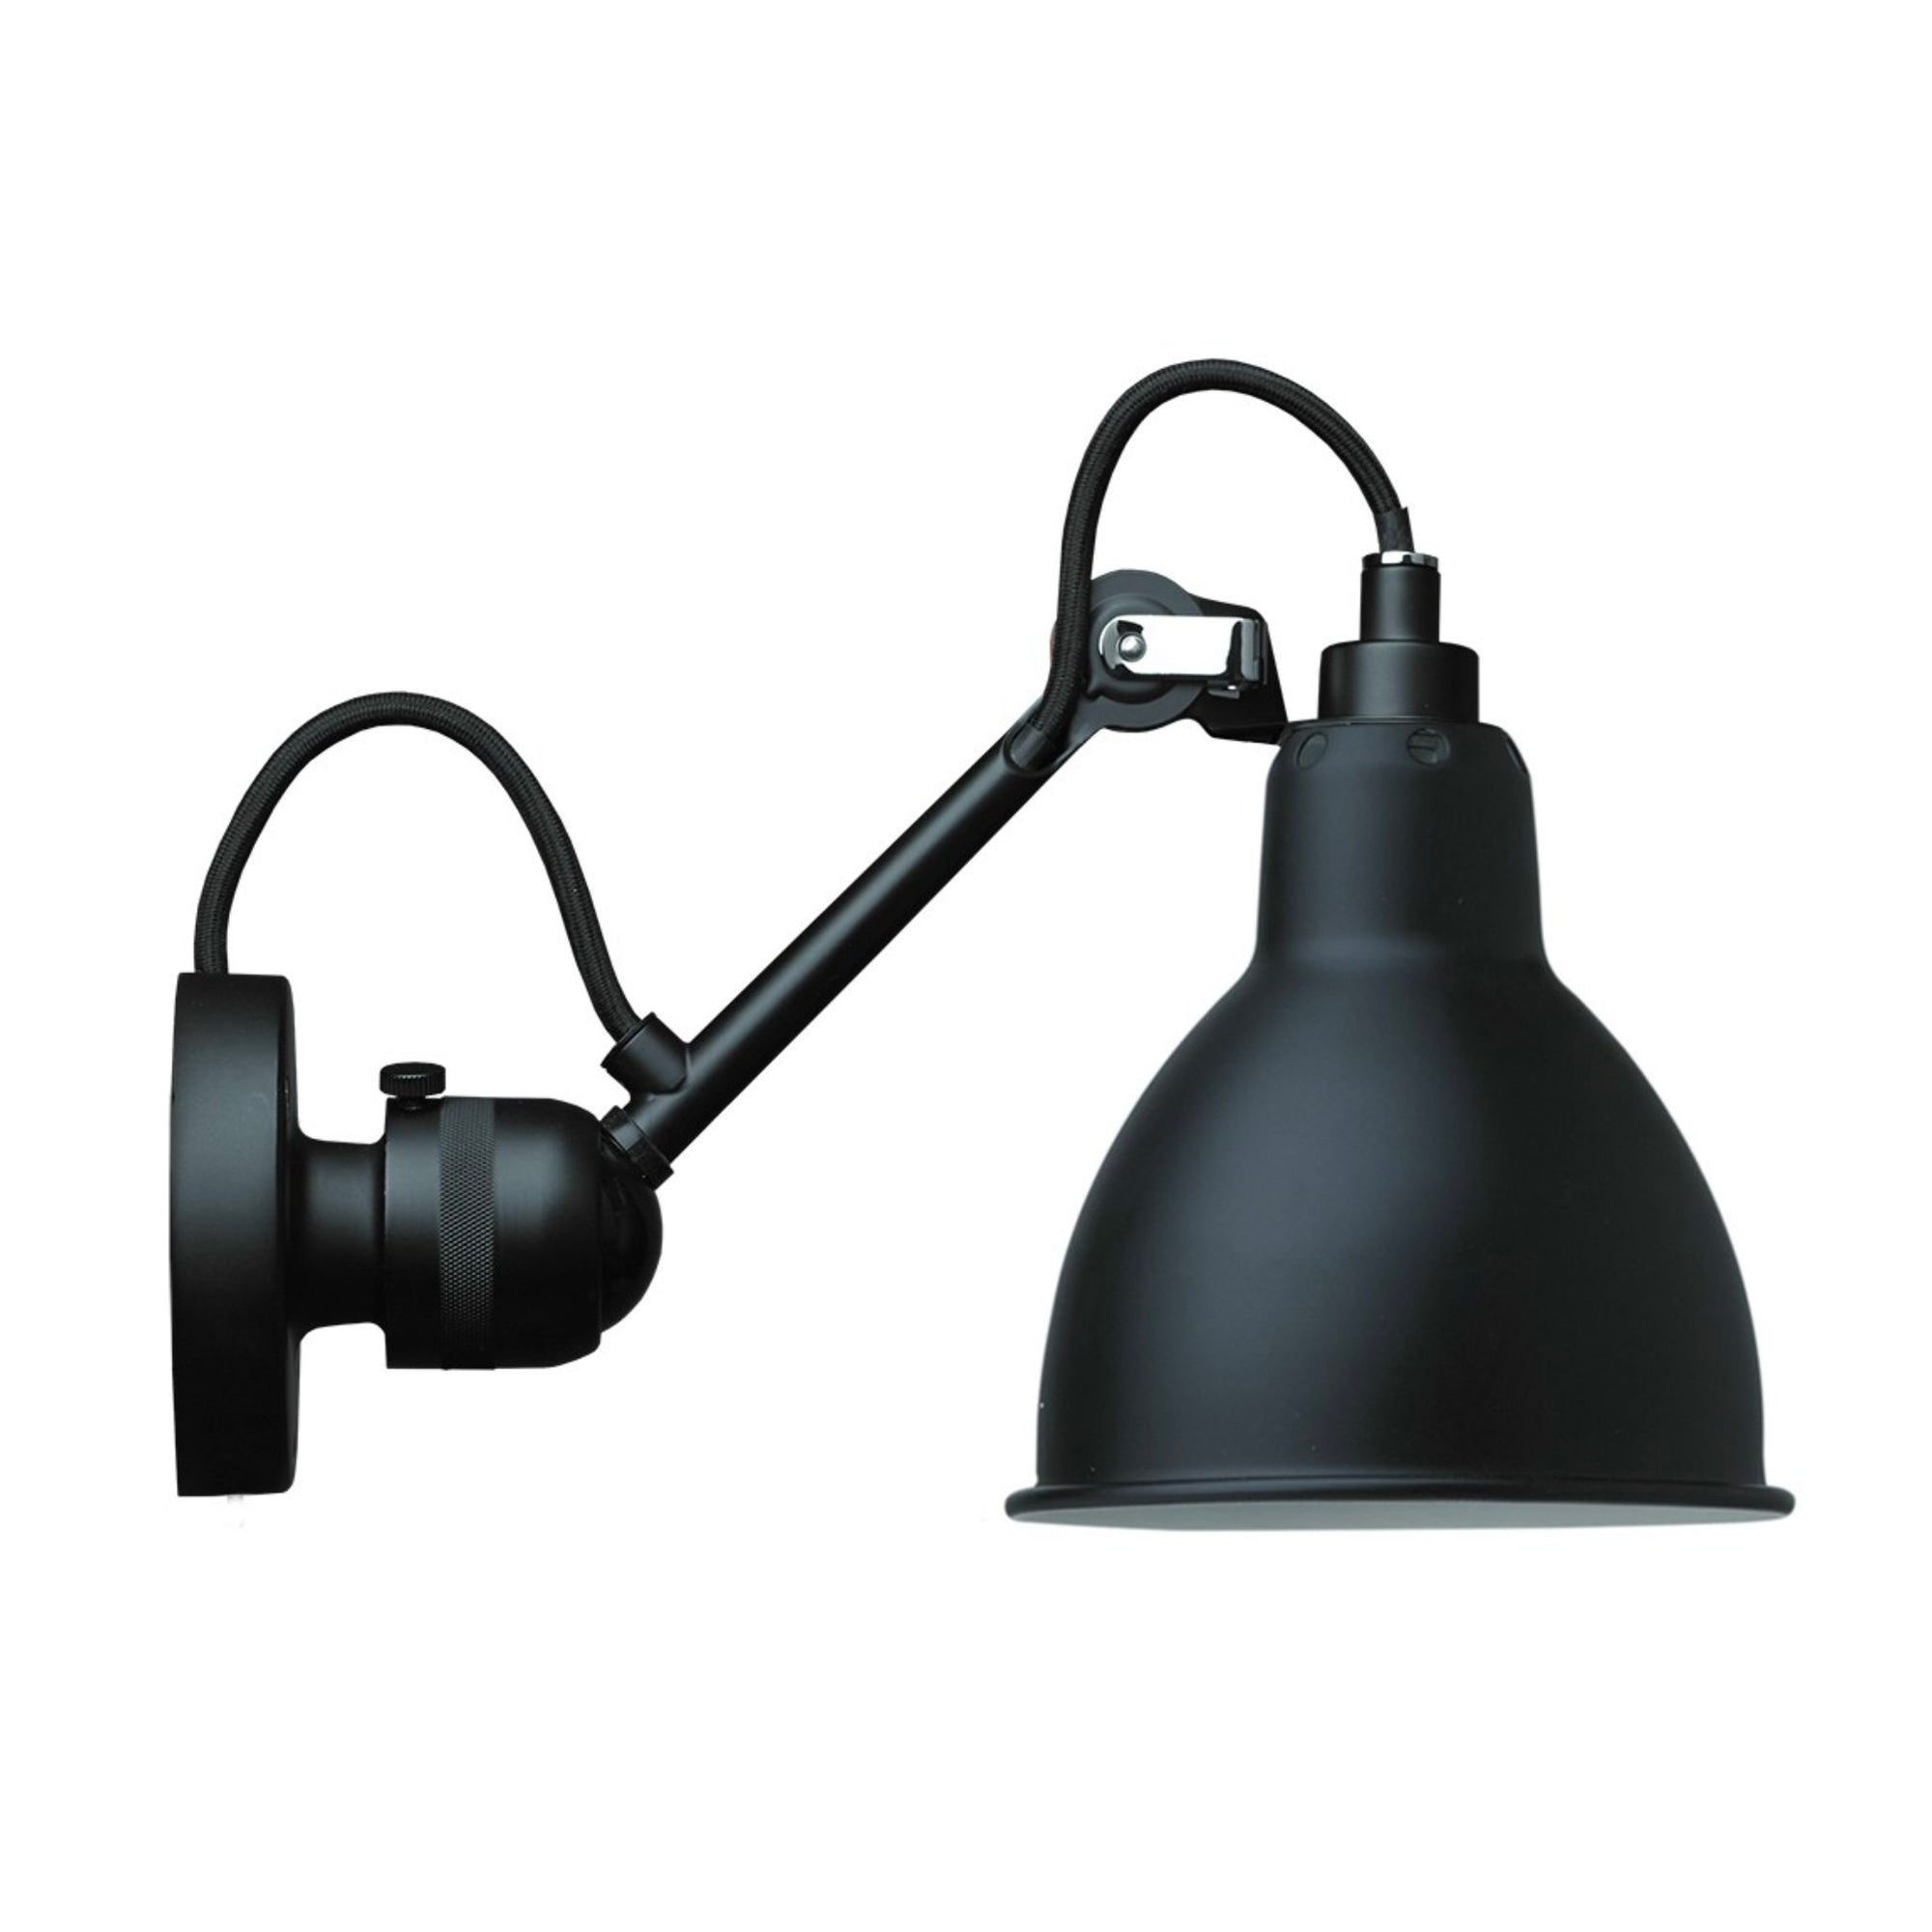 DCW Lampe Gras N304 wall lamp, round - black